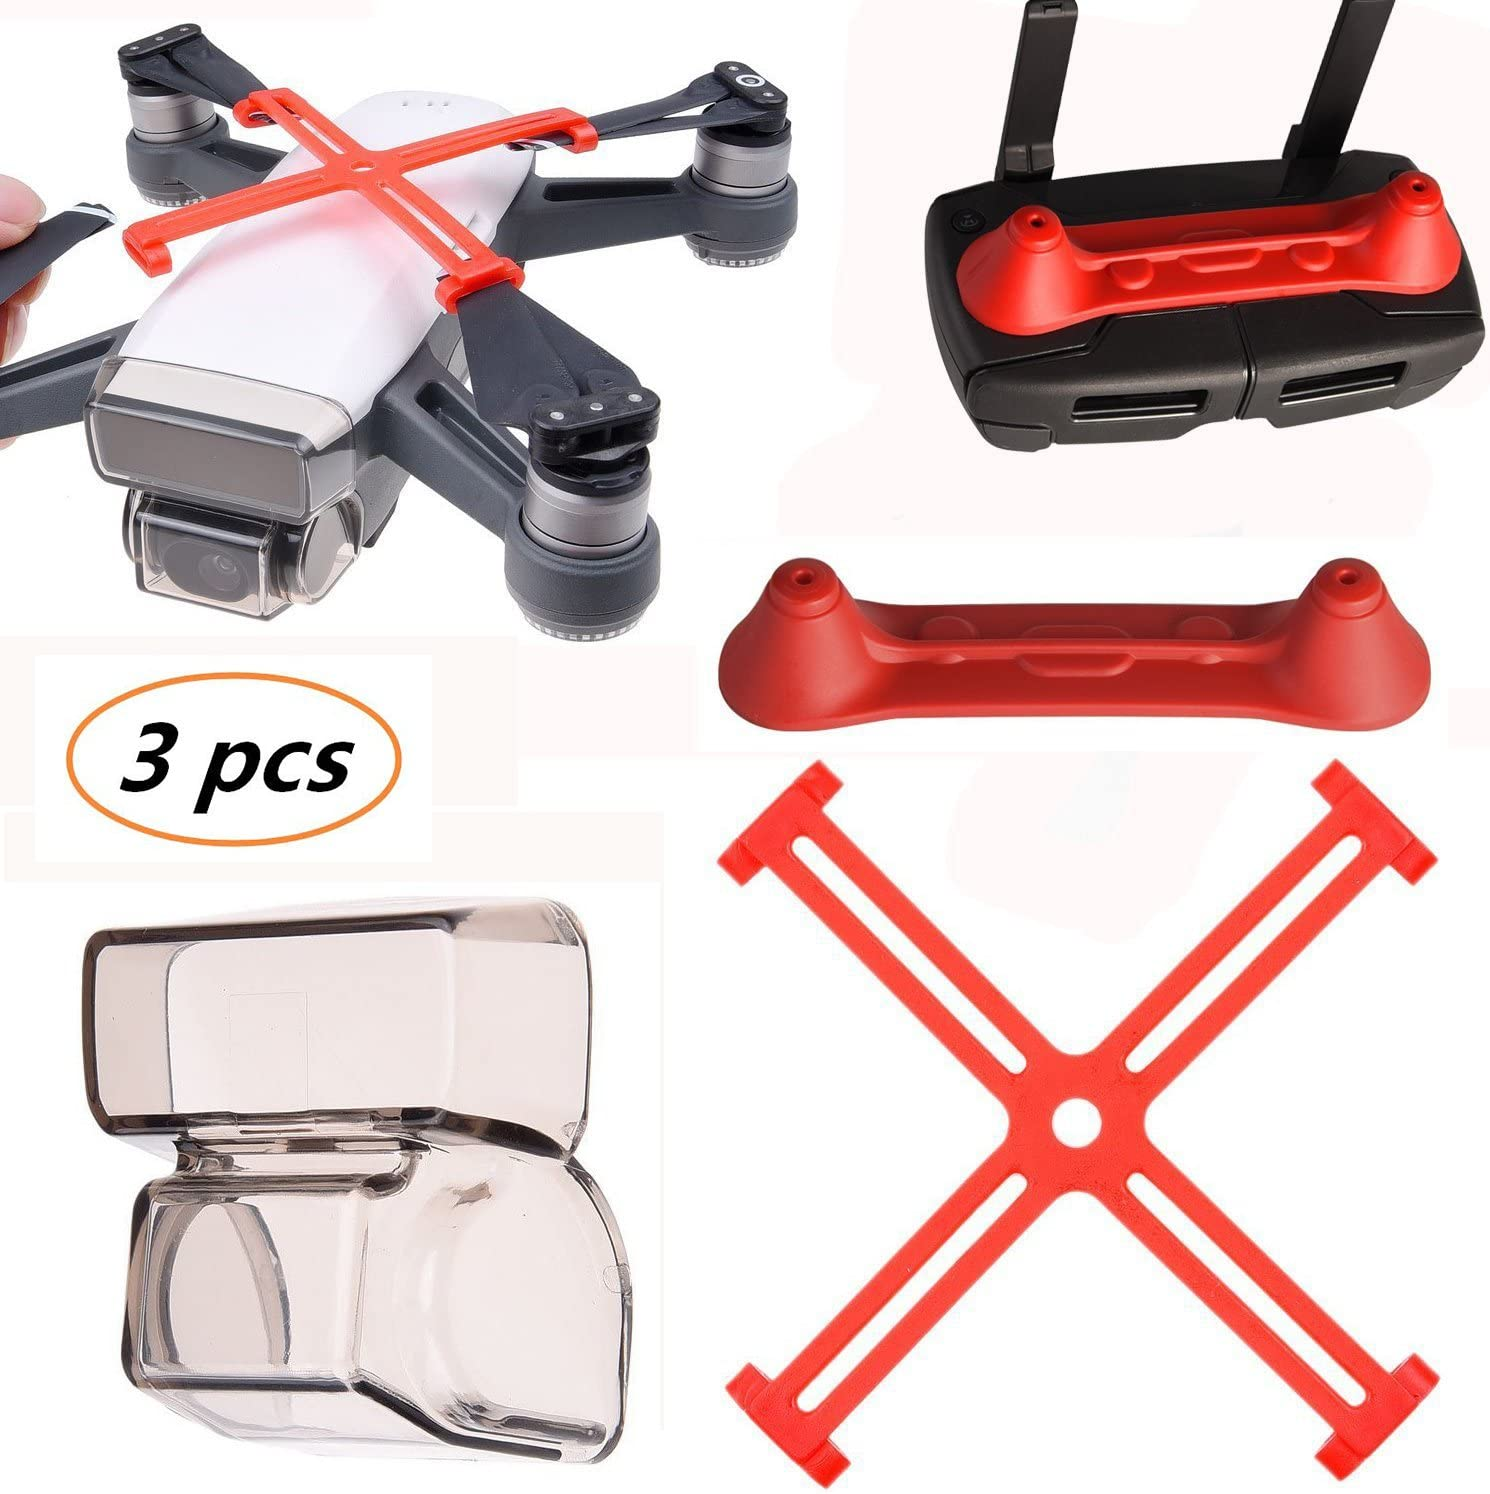 Kismaple Spark Protection Accessories Camera Lens Cap Cover+ Propellers...